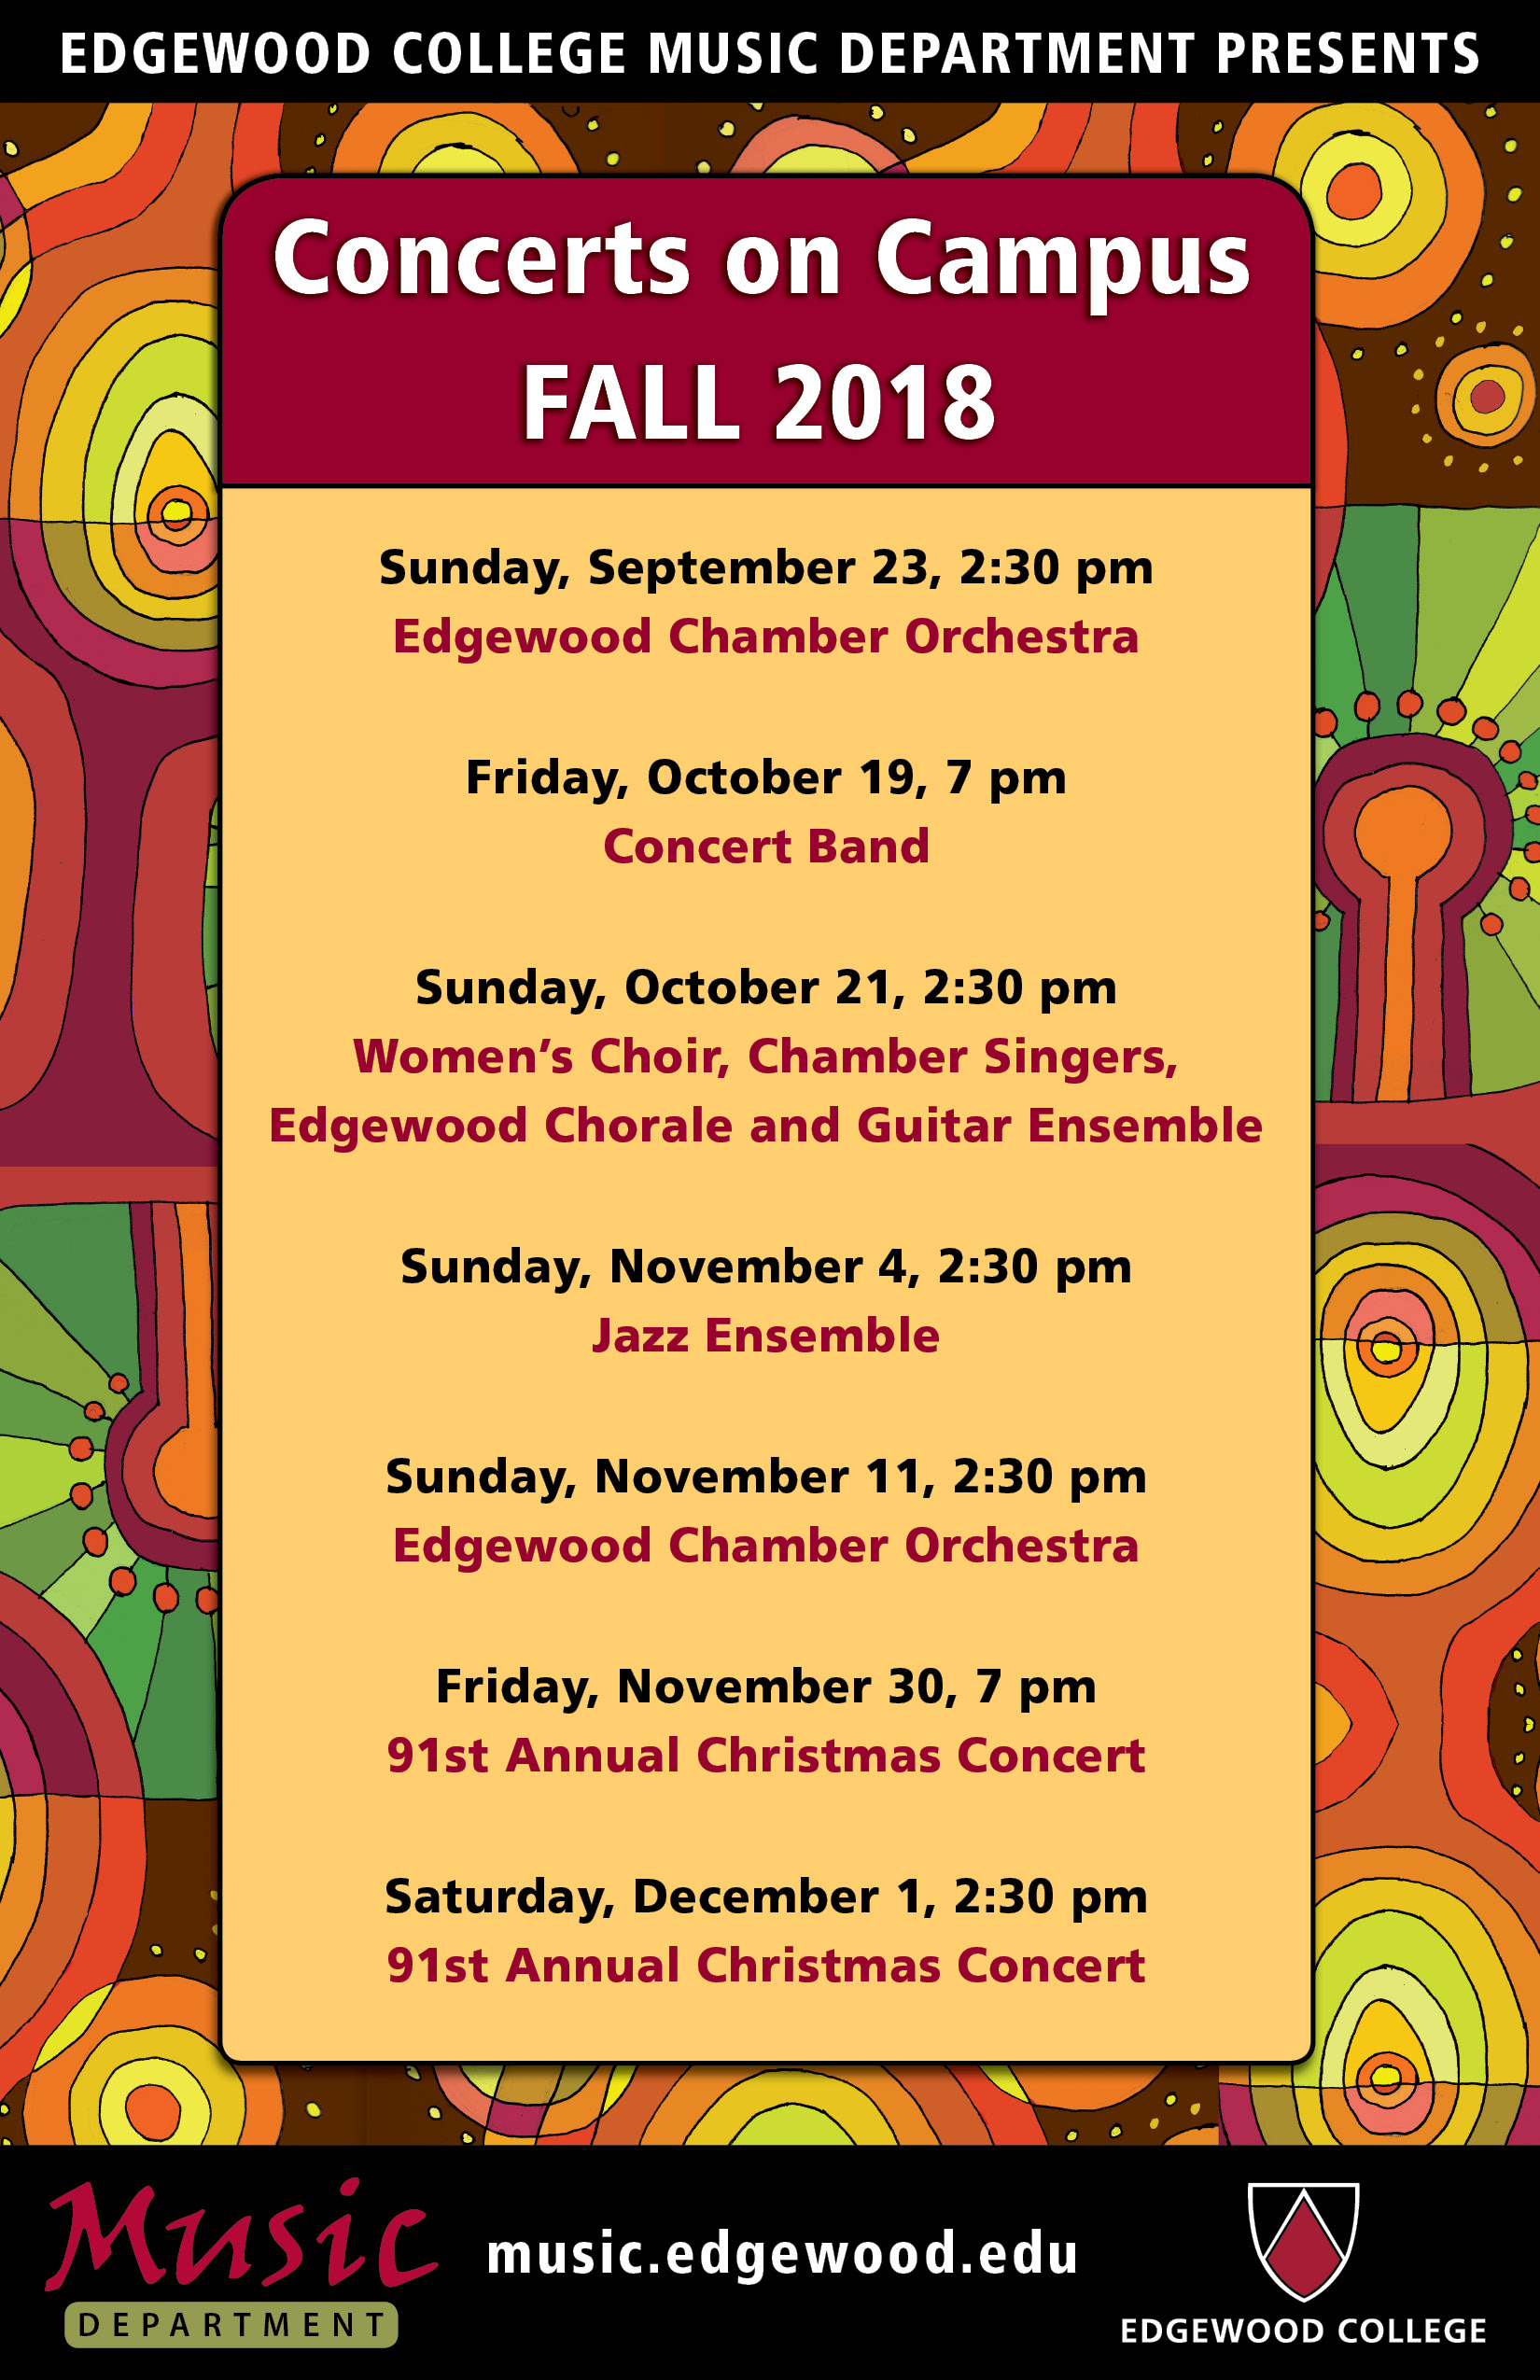 Edgewood College Music Department's Fall Concert Series 2018 Poster